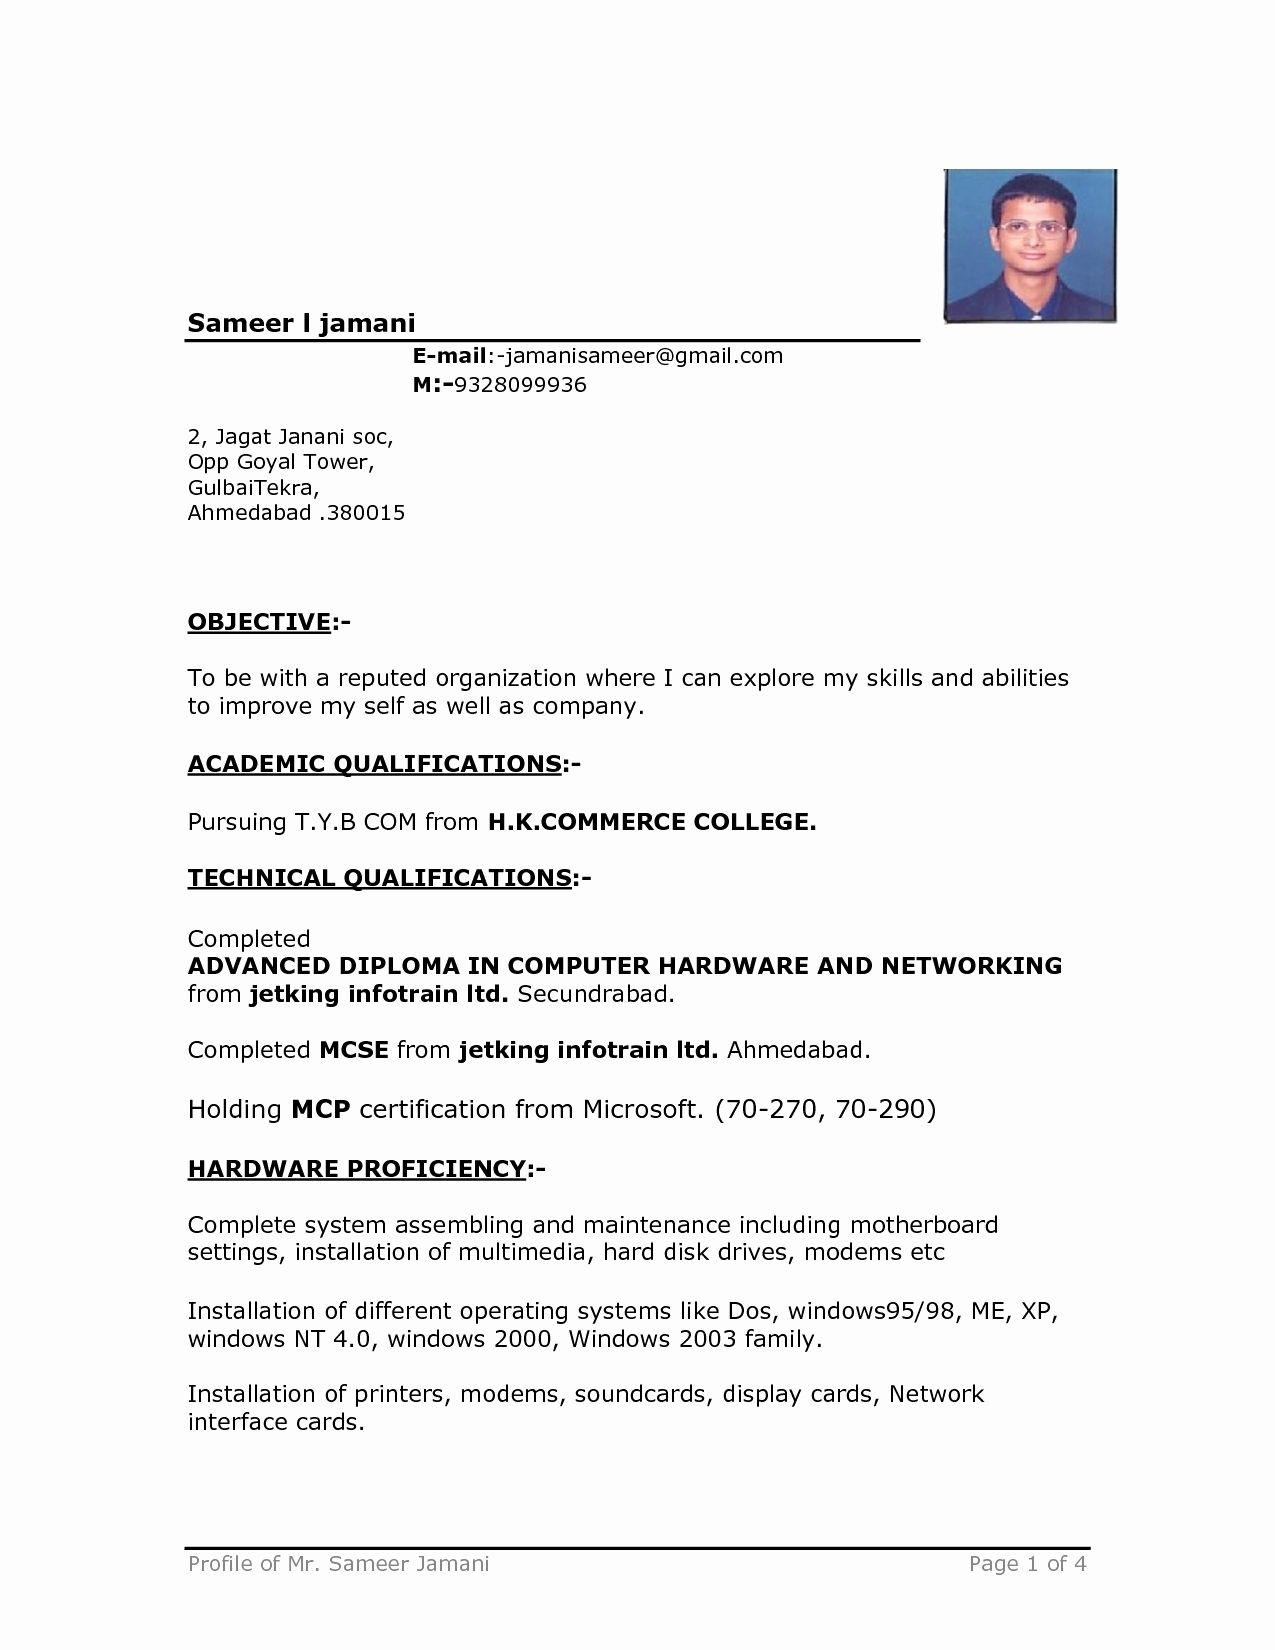 Resume Format Normal - Resume template word, Downloadable resume template, Free resume format, Resume format in word, Cover letter for resume, Resume template free - RESUME normal resume format   Colomb christopherbathum co normal resume format   Colomb christopherb